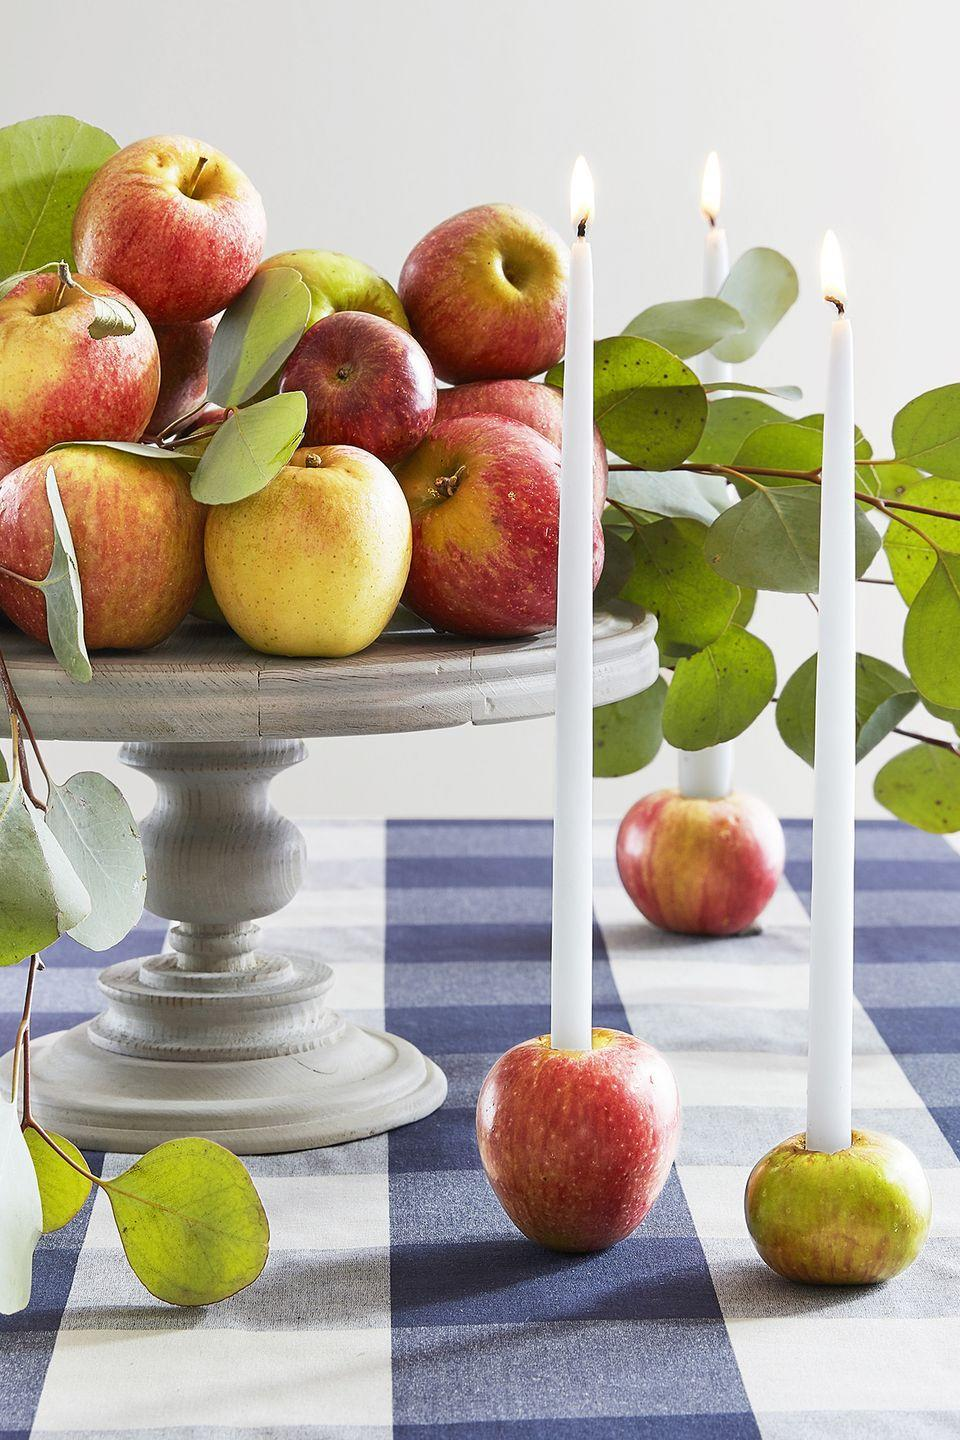 """<p>Utilize your latest farmer's market finds to make this fast display. Use a paring knife to cut a 1-inch-deep hole in the top of a few apples, slightly narrower than the candles, and wedge the candles in. Display alone or with stacked apples and seeded eucalyptus on a neutral cake stand.</p><p><a class=""""link rapid-noclick-resp"""" href=""""https://www.amazon.com/Bolsius-inch-White-taper-candles/dp/B01F49FITE/?tag=syn-yahoo-20&ascsubtag=%5Bartid%7C10050.g.2130%5Bsrc%7Cyahoo-us"""" rel=""""nofollow noopener"""" target=""""_blank"""" data-ylk=""""slk:SHOP TAPER CANDLES"""">SHOP TAPER CANDLES</a></p>"""